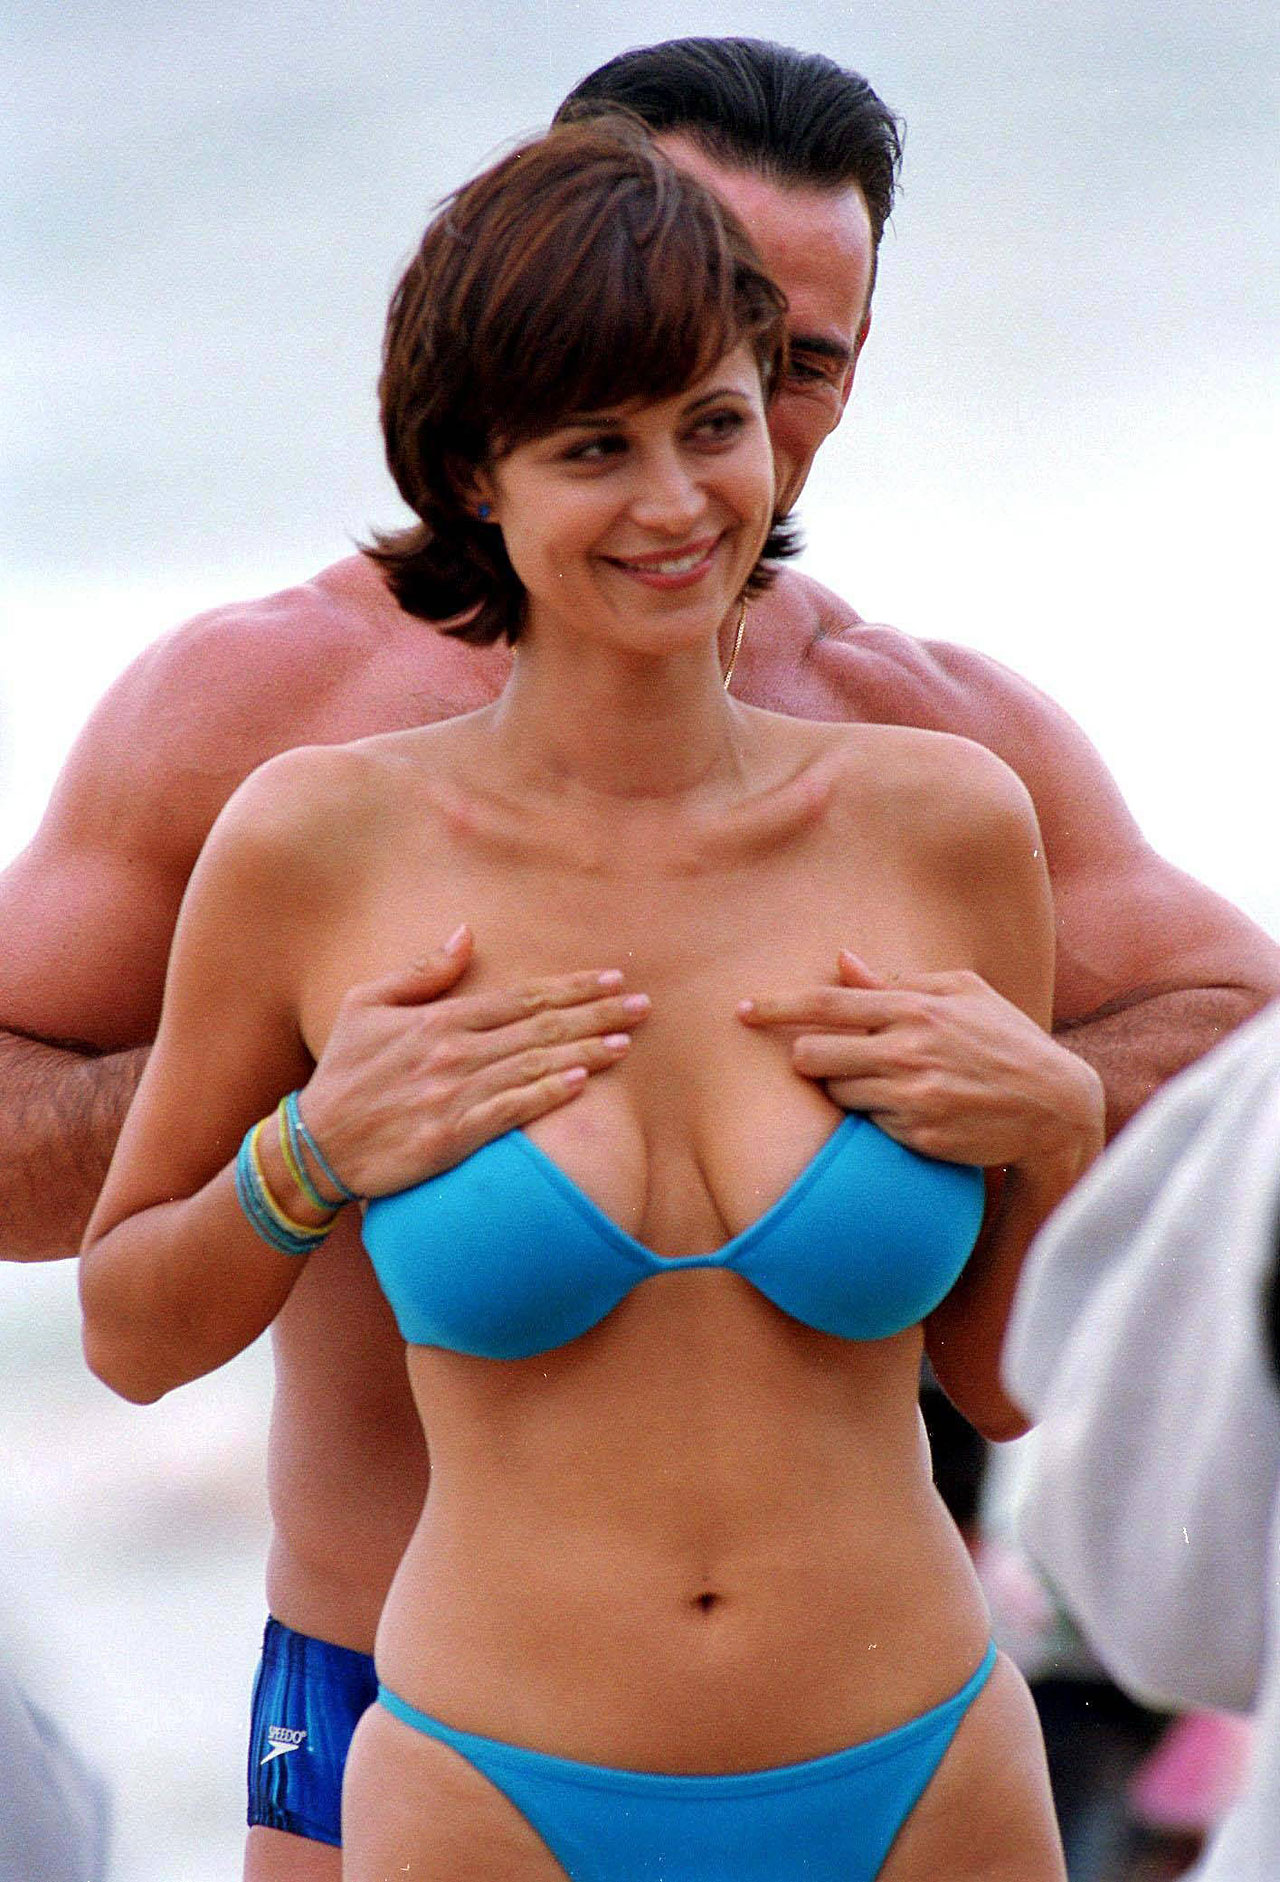 Catherine Bell | Viewing picture catherine-bell-11.jpg: www.leakedcelebs.com/catherine-bell/opens-up-her-blouse-to-expose...